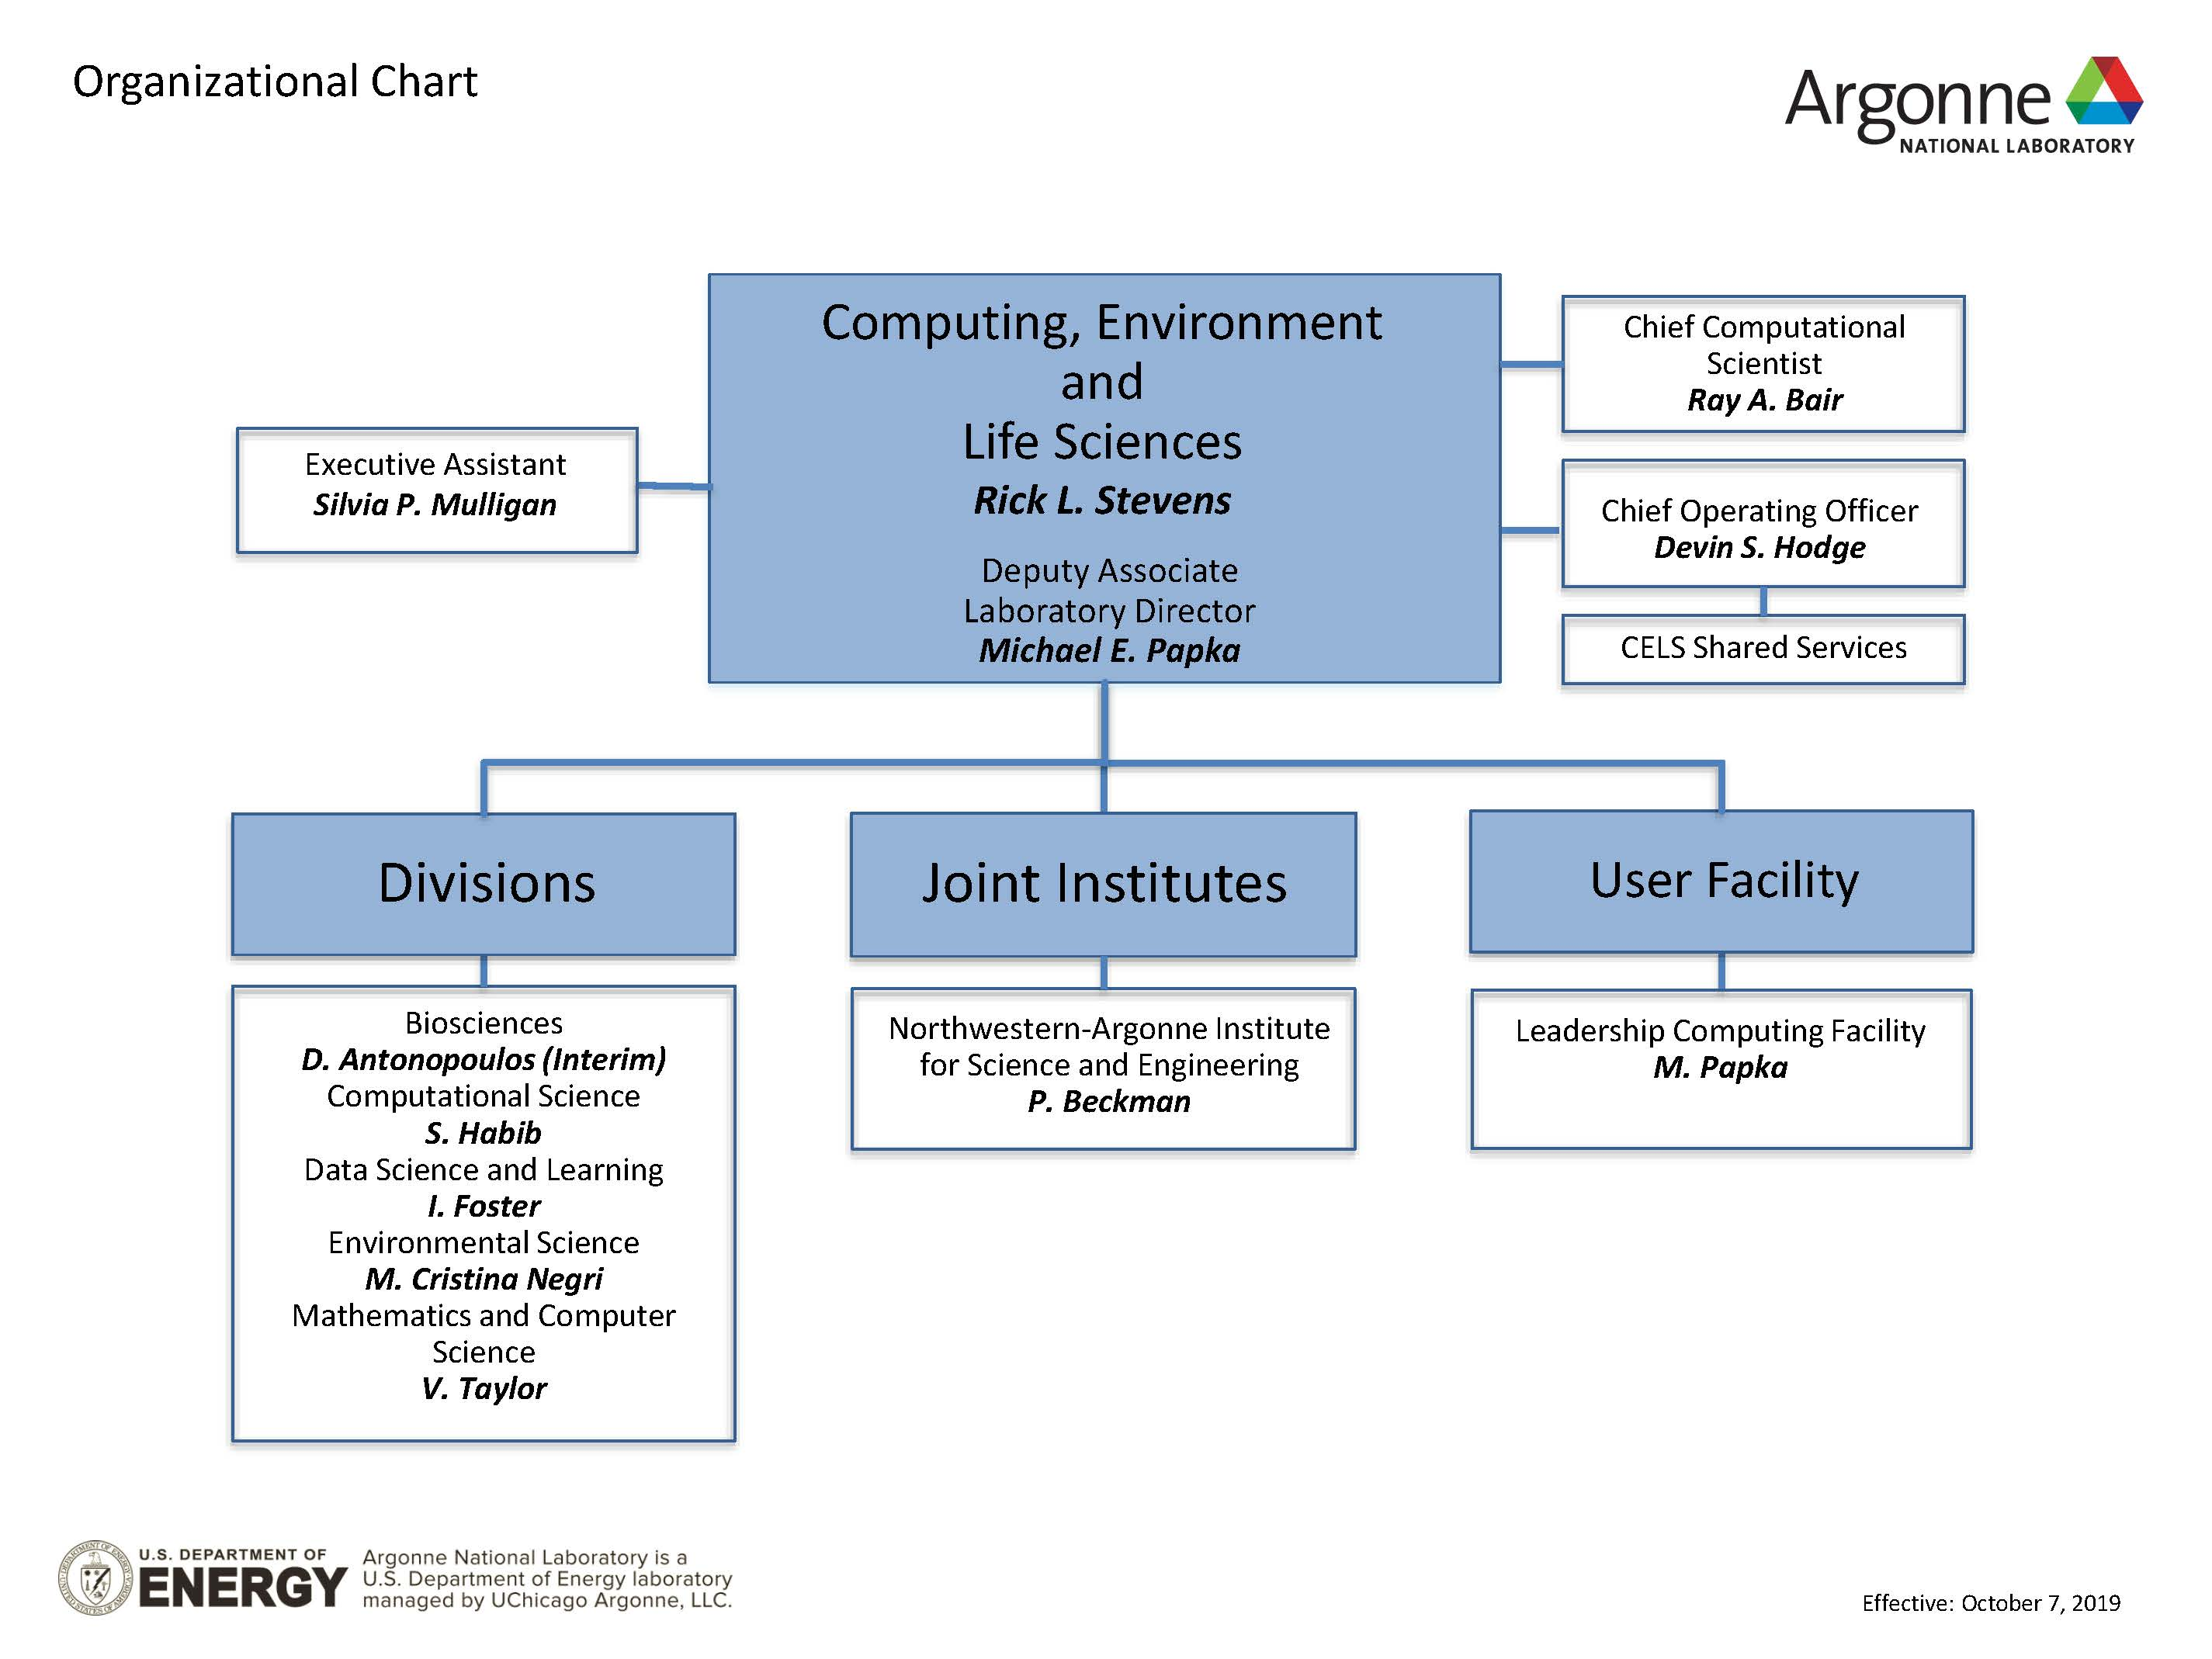 Organization chart for CELS Directorate at Argonne National Laboratory